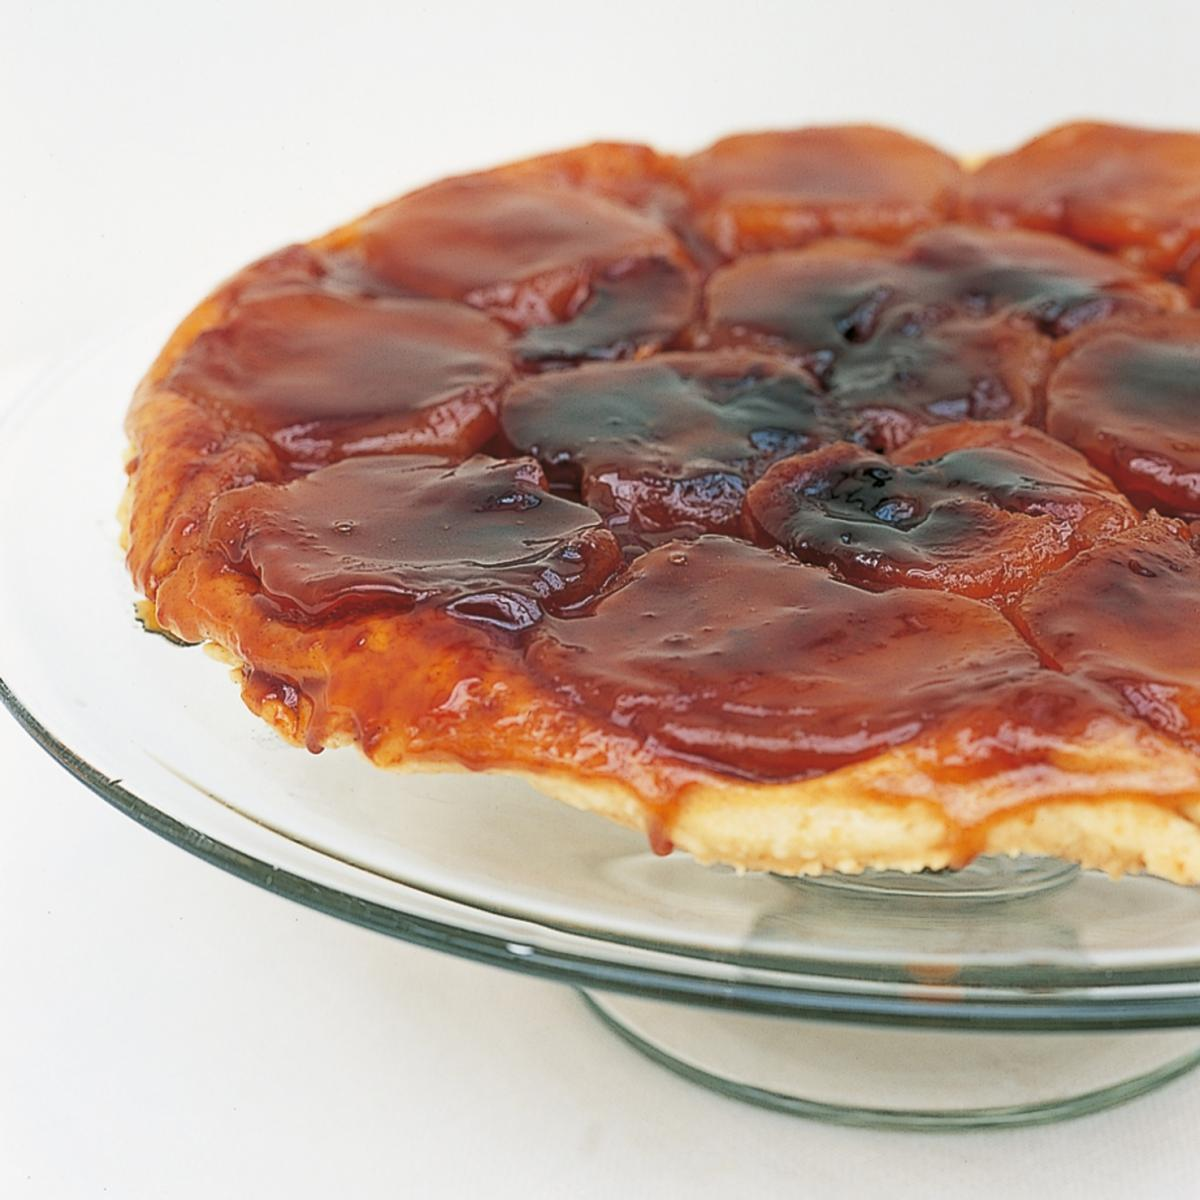 A picture of Delia's Lucy's Tarte Tatin recipe